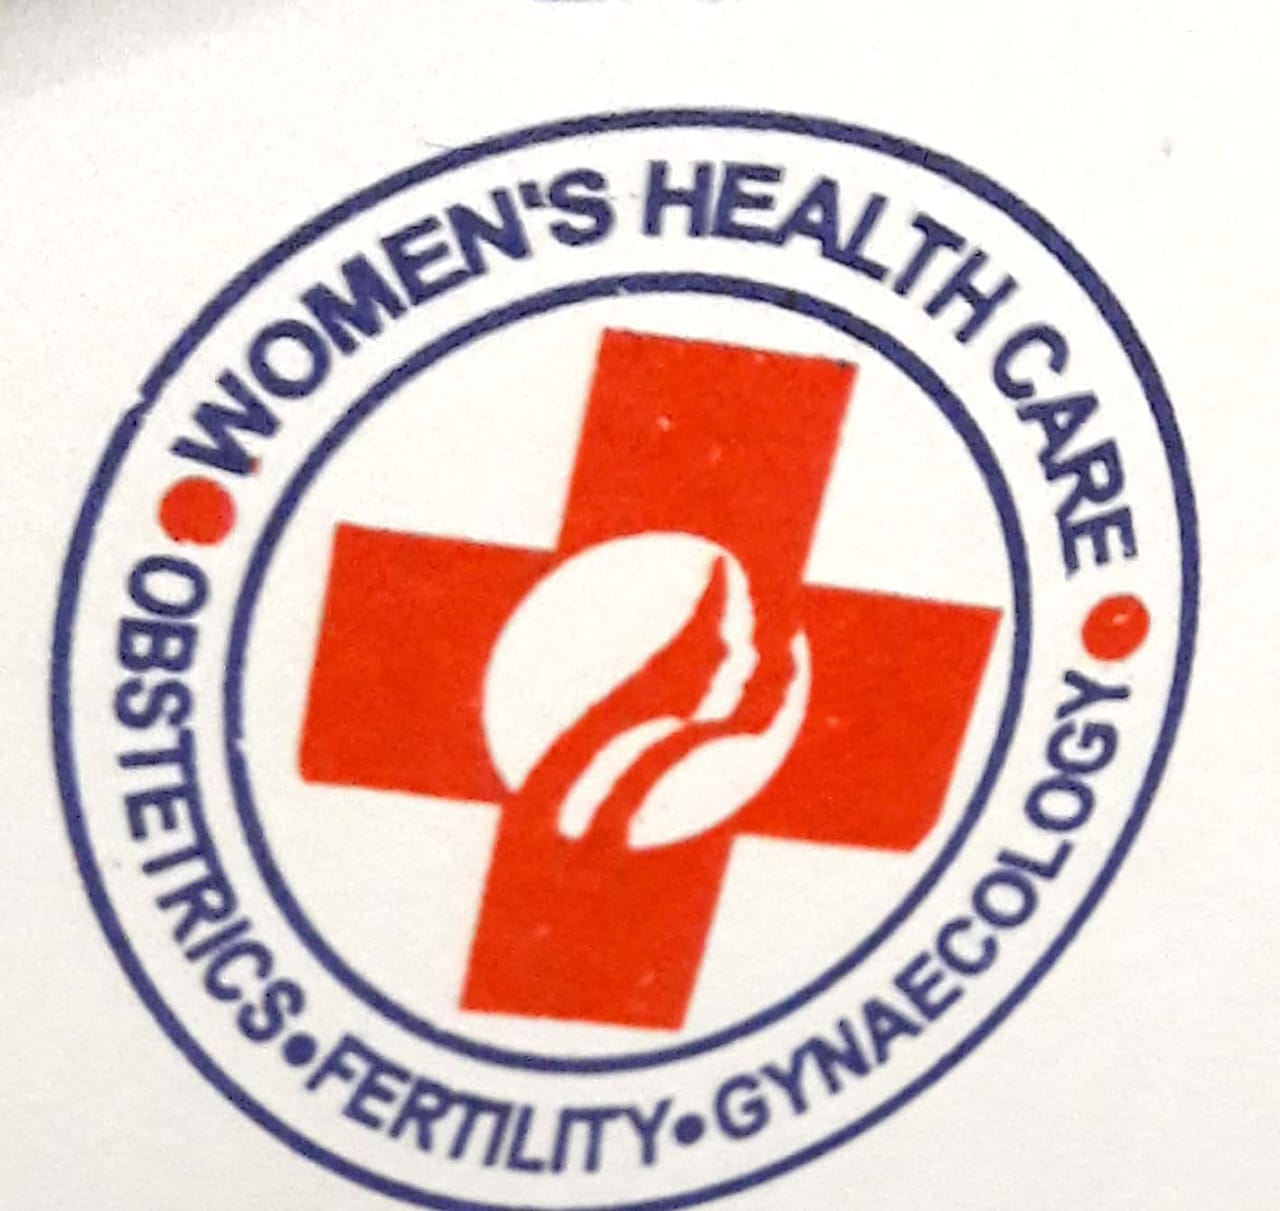 Sampath Gowri Clinic And Women Health Center